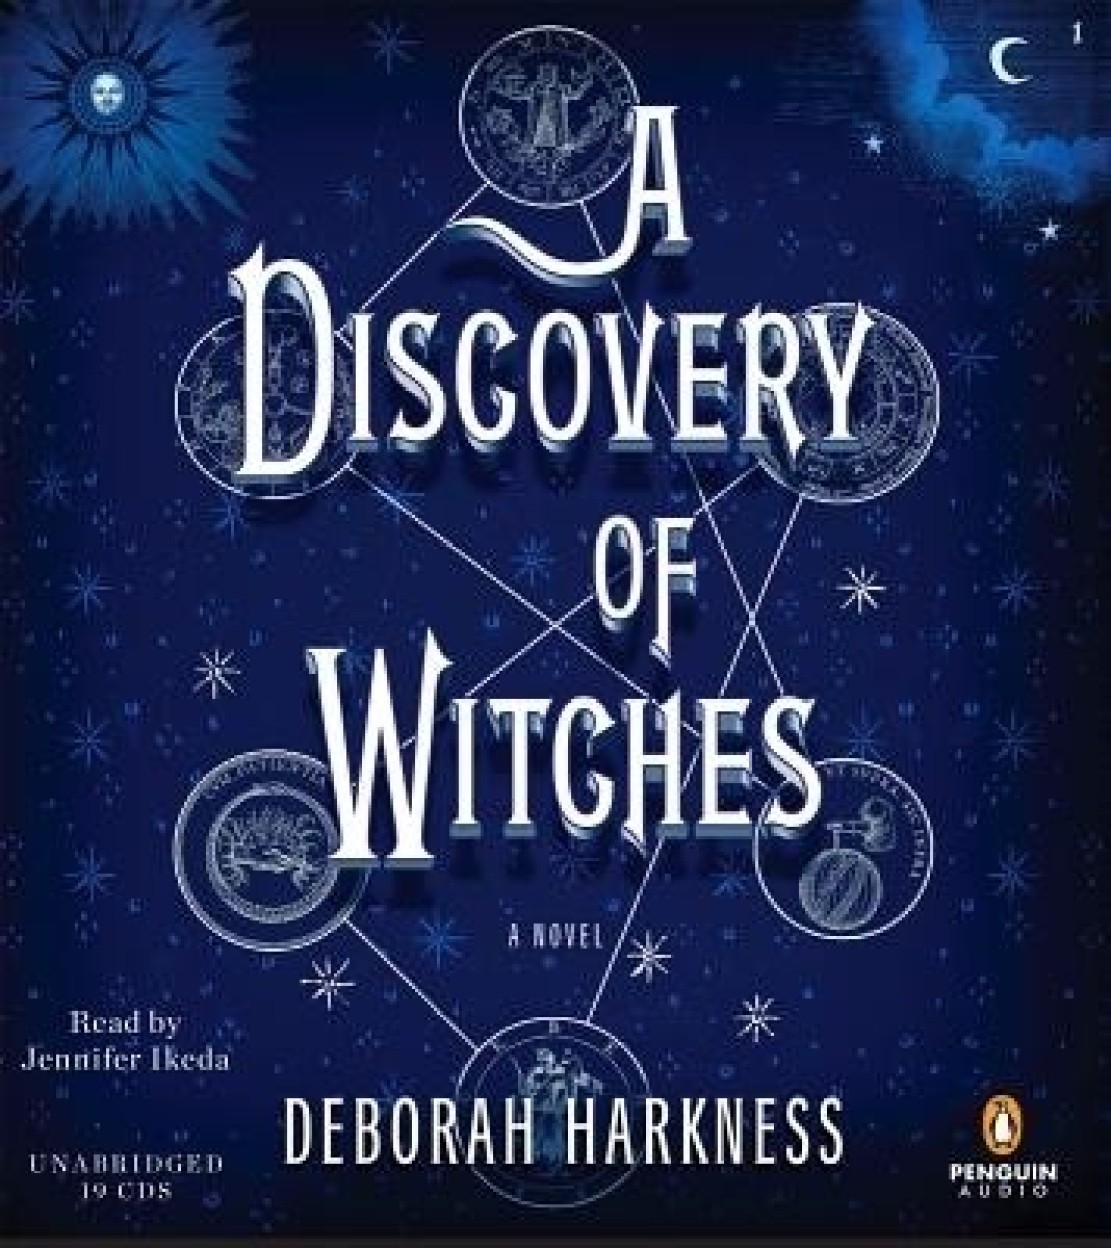 A Discovery of Witches: A Novel (audio cd) A Discovery of Witches: A Novel - Deborah Harkness,Jennifer Ikeda